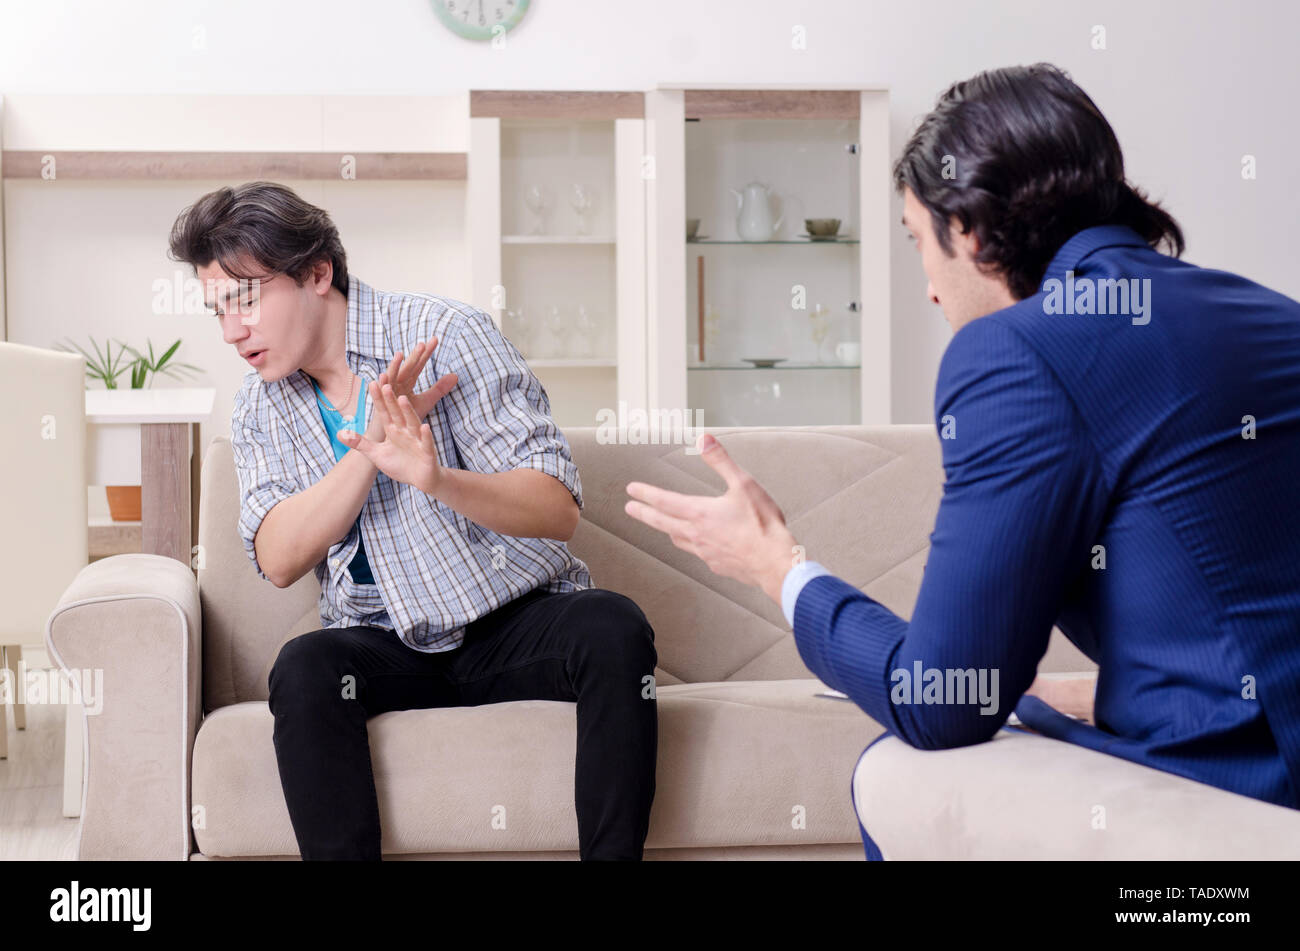 Young male patient discussing with psychologist personal problems - Stock Image